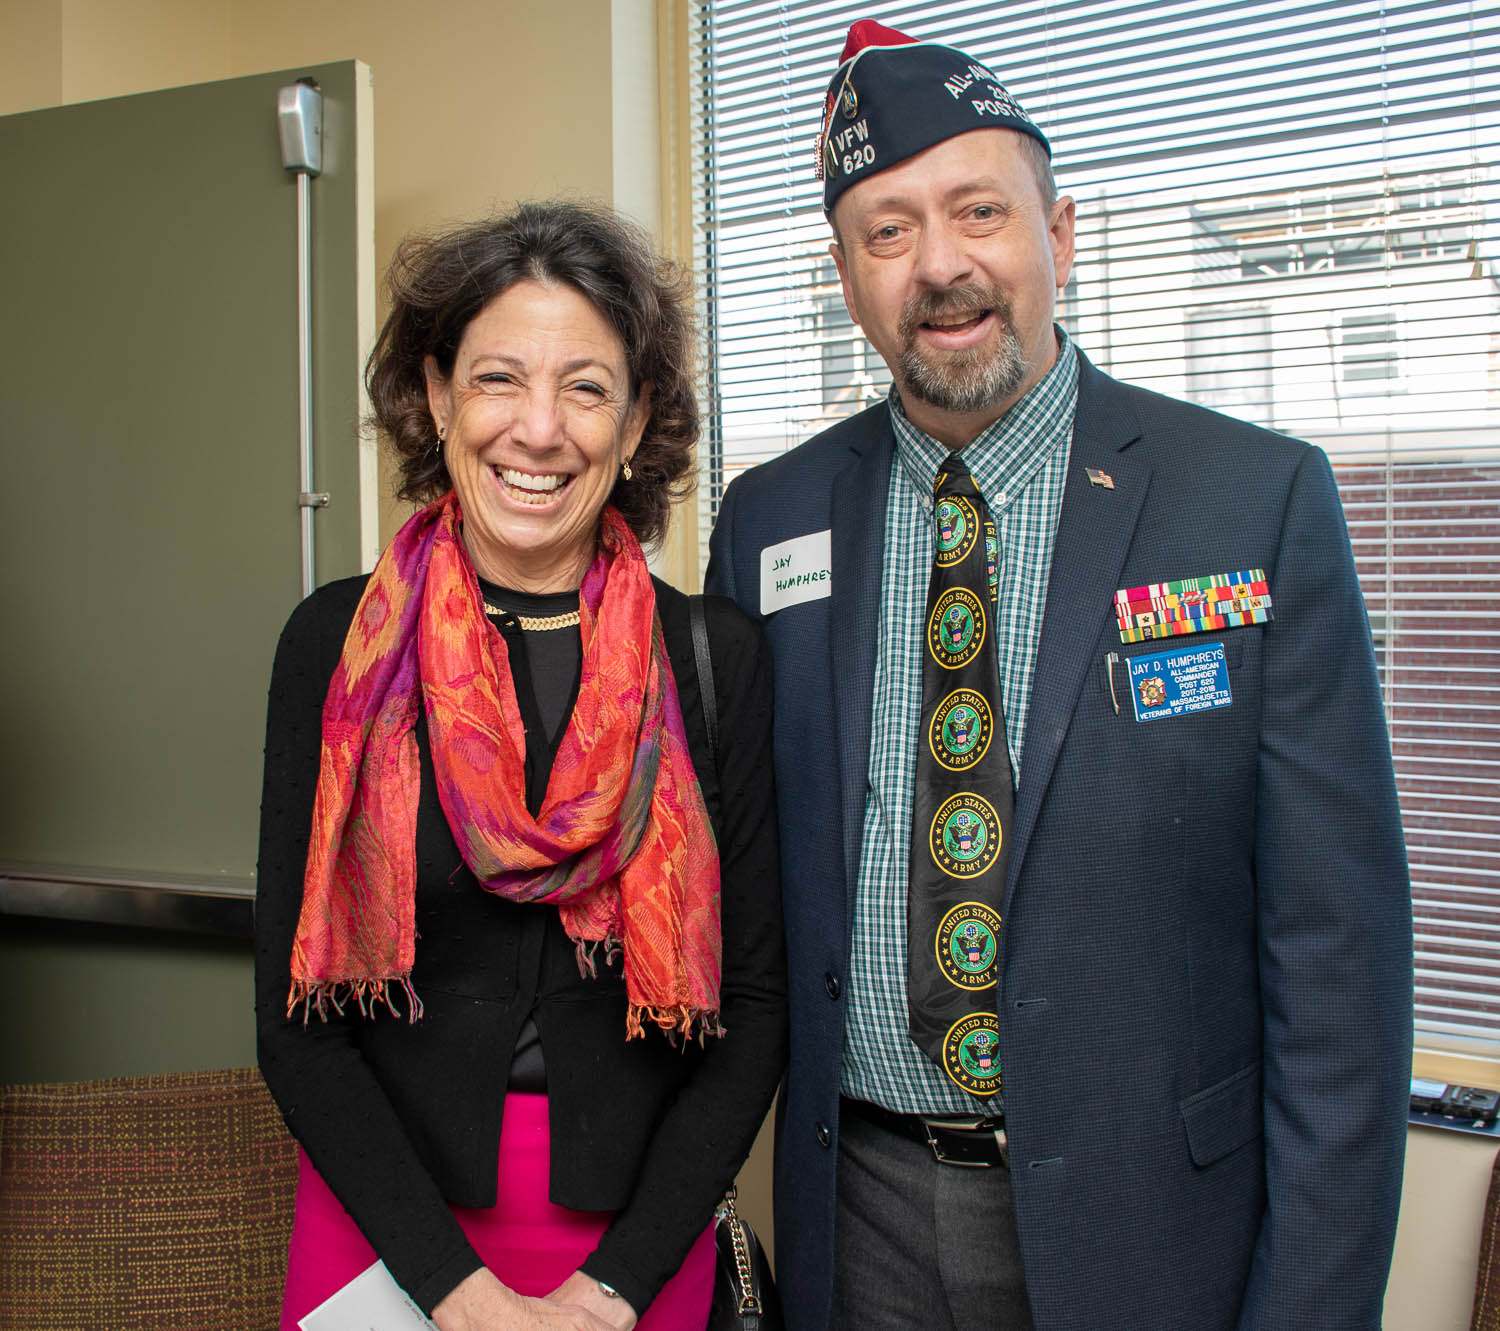 President Janet L. Steinmayer and Jay Humphreys of VFW Post 620